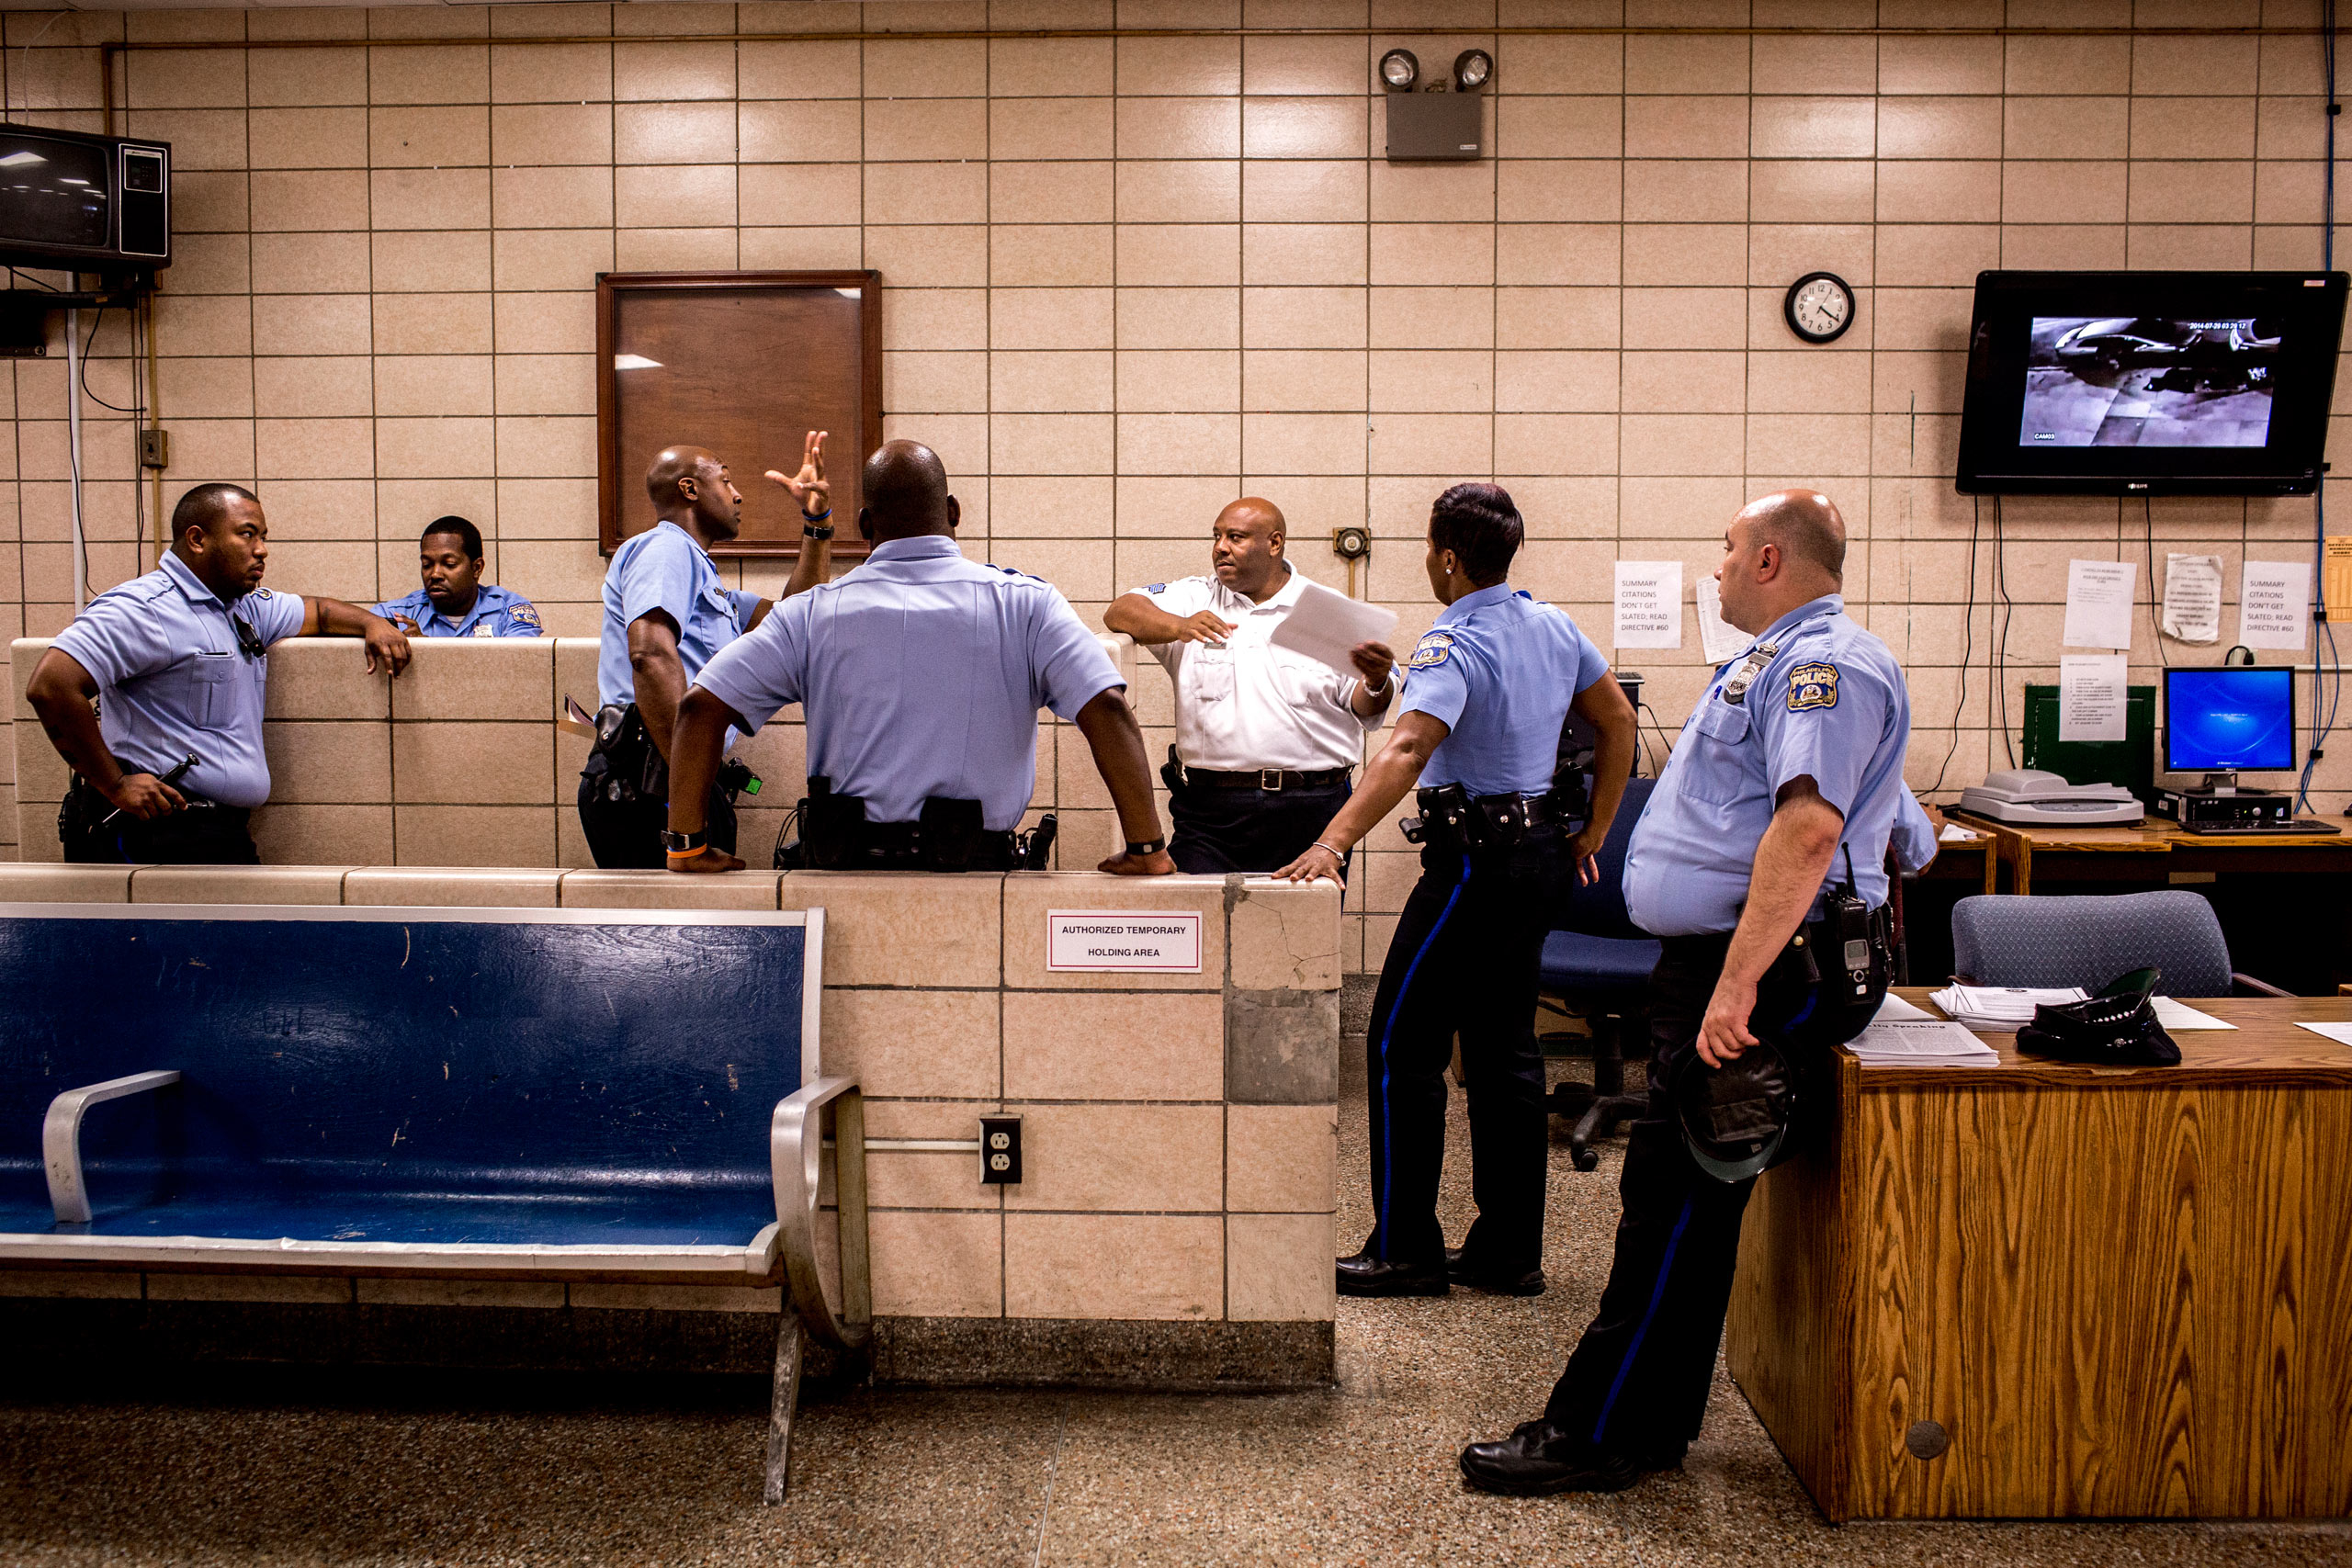 Sergeant Rodney Linder, center, speaks to a group of officers before they head out on patrol for the evening. July 27, 2015. Philadelphia, Pa.